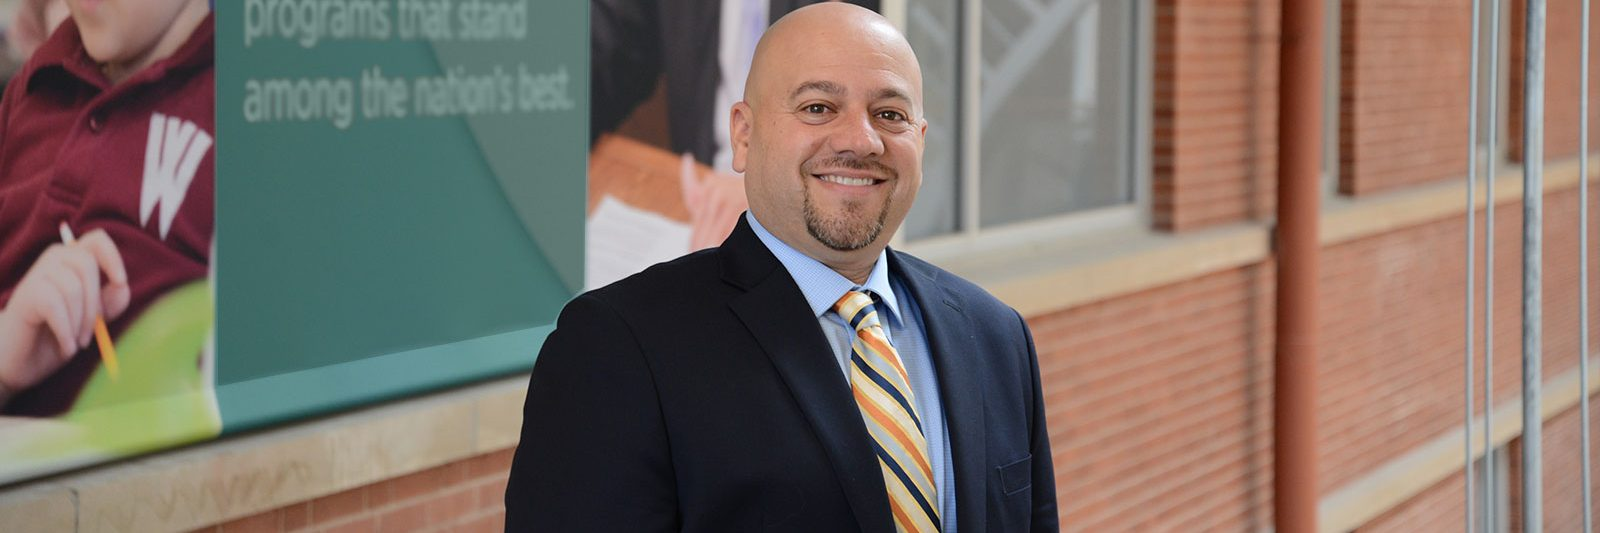 Jason Irizarry Named Interim Dean of the Neag School. Read the Provost's Announcement.